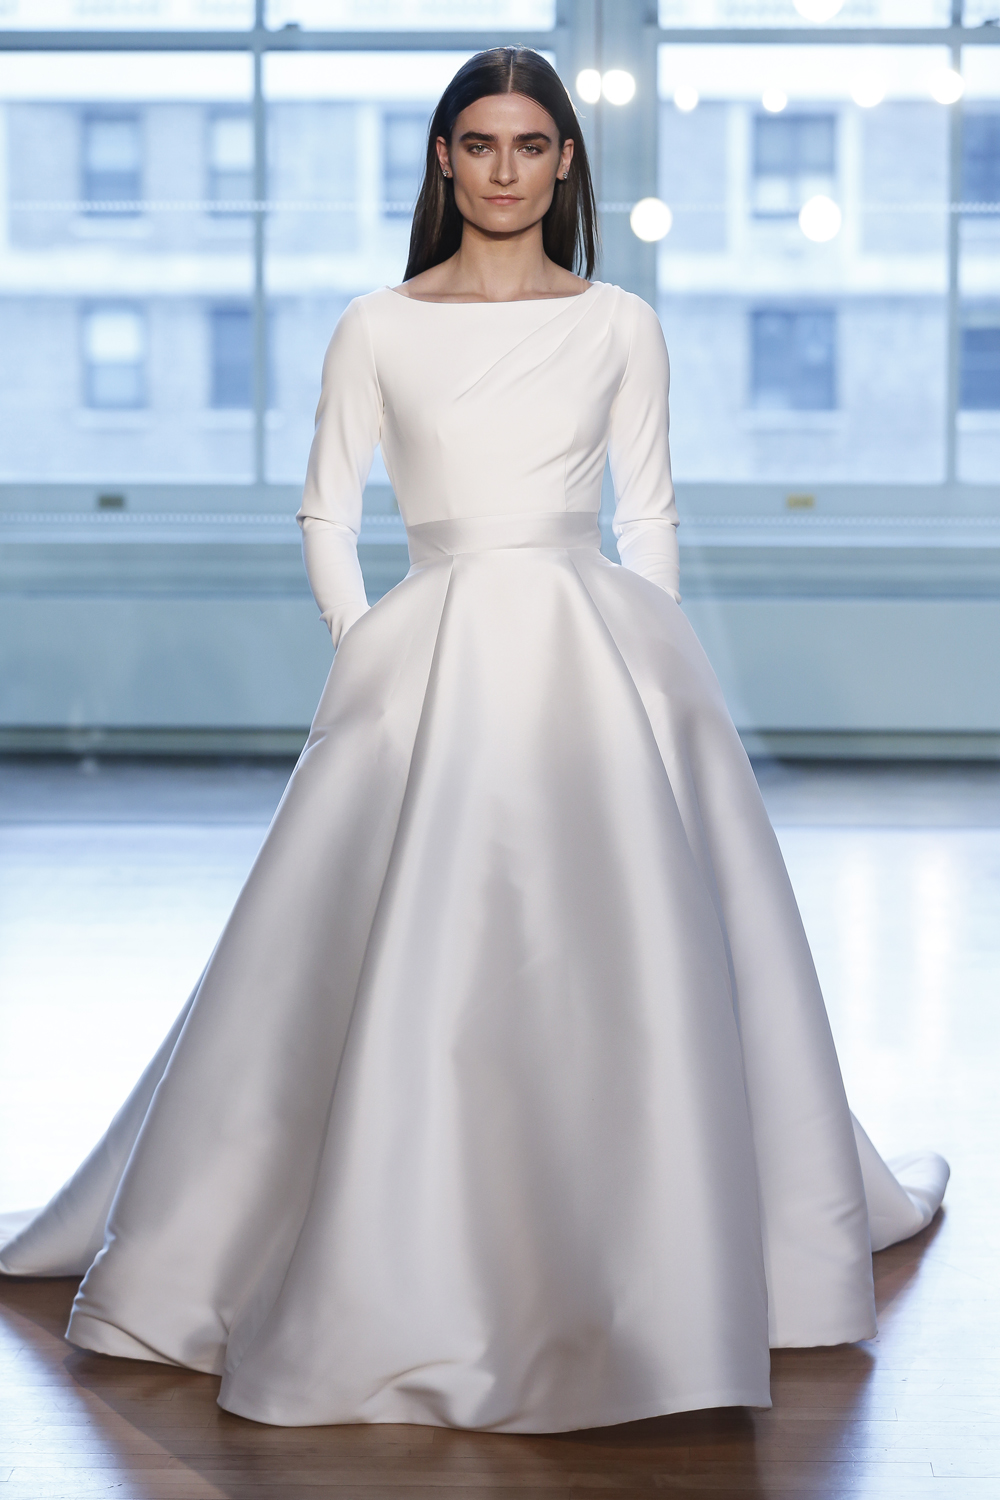 Meghan Markle Wedding Dresses.Be Inspired By Design Elements From Meghan Markle Wedding Dress